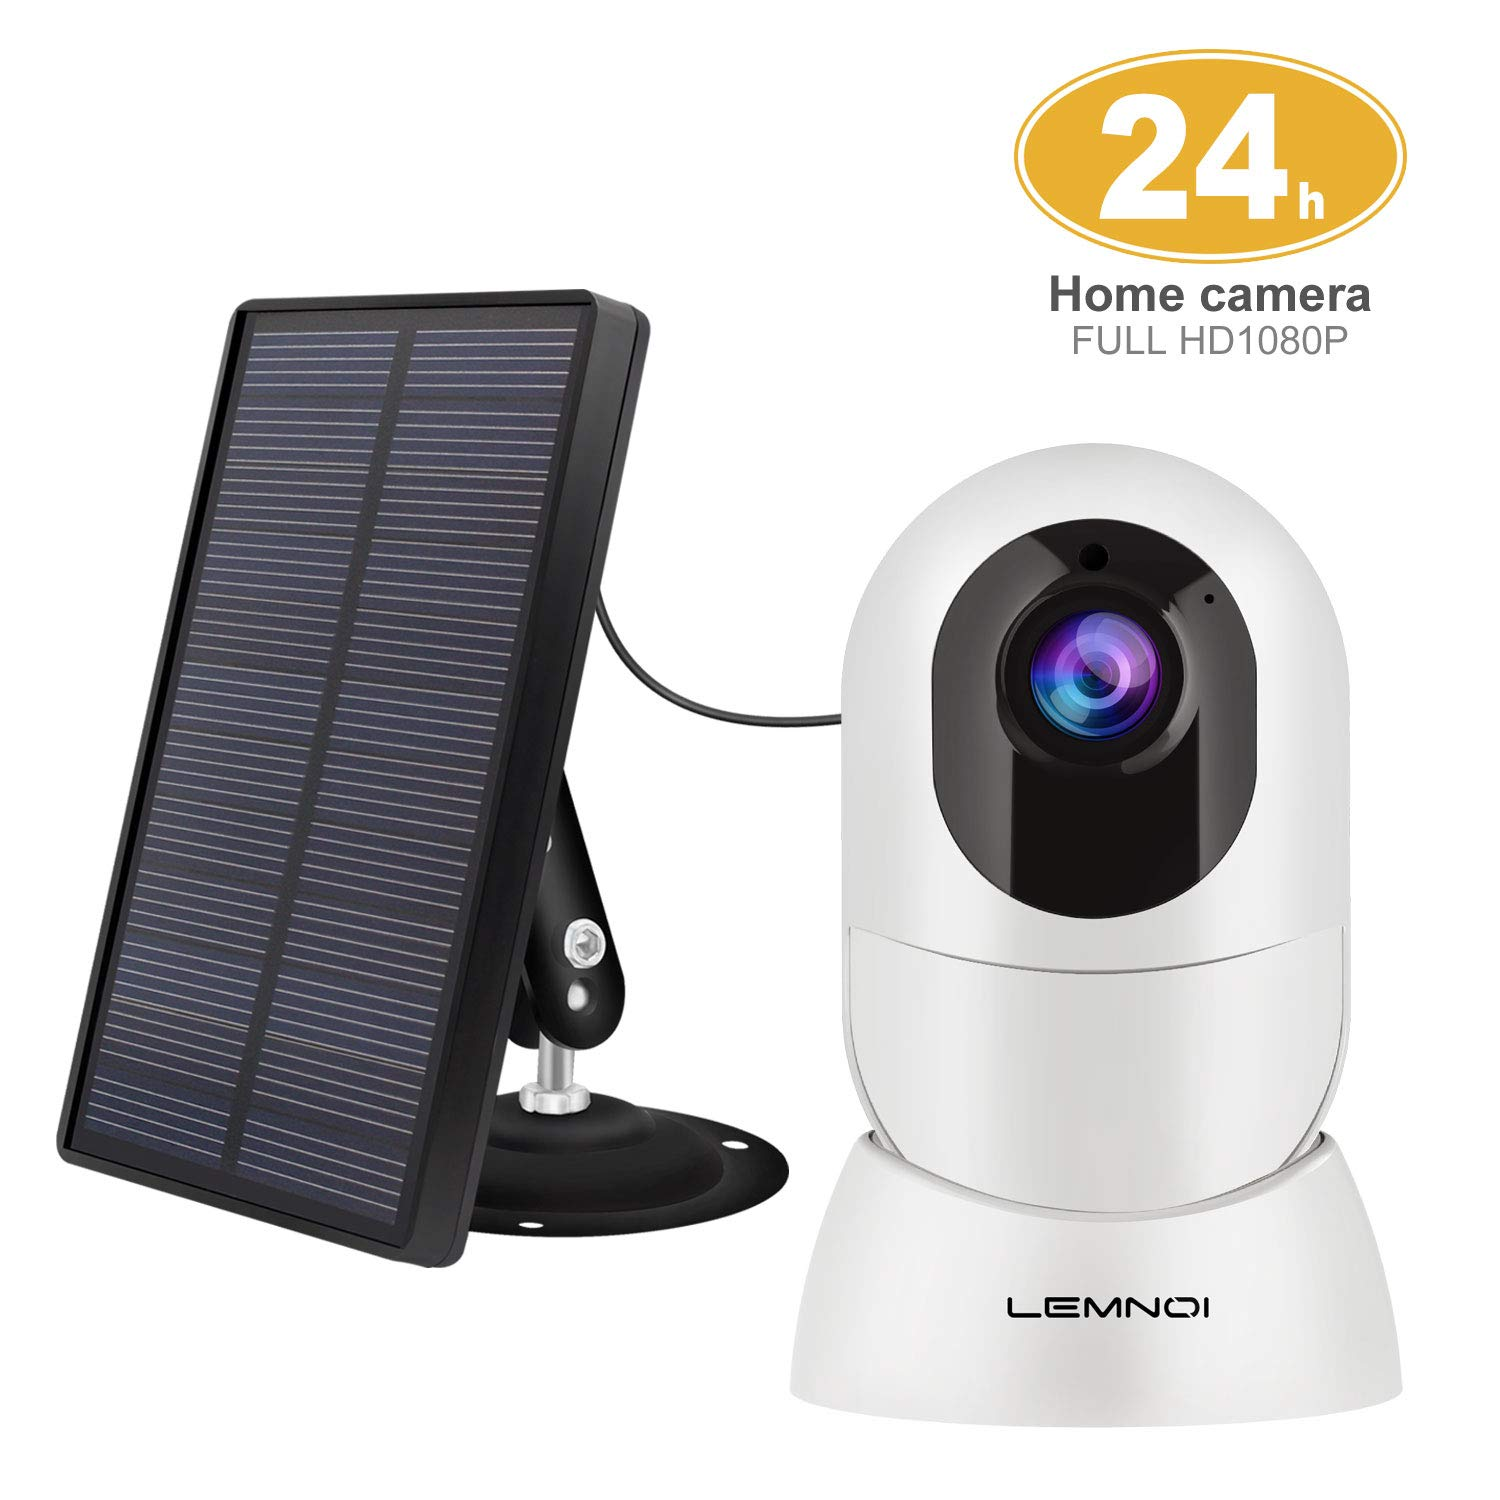 Lemnoi Wireless Rechargeable Battery Security Camera + Solar Panel, 1080p HD Outdoor/Indoor Solar Powered Camera | Night Vision| IP65 Weatherproof|2-Way Audio |PIR Motion Detection| Free Cloud Record by Lemnoi